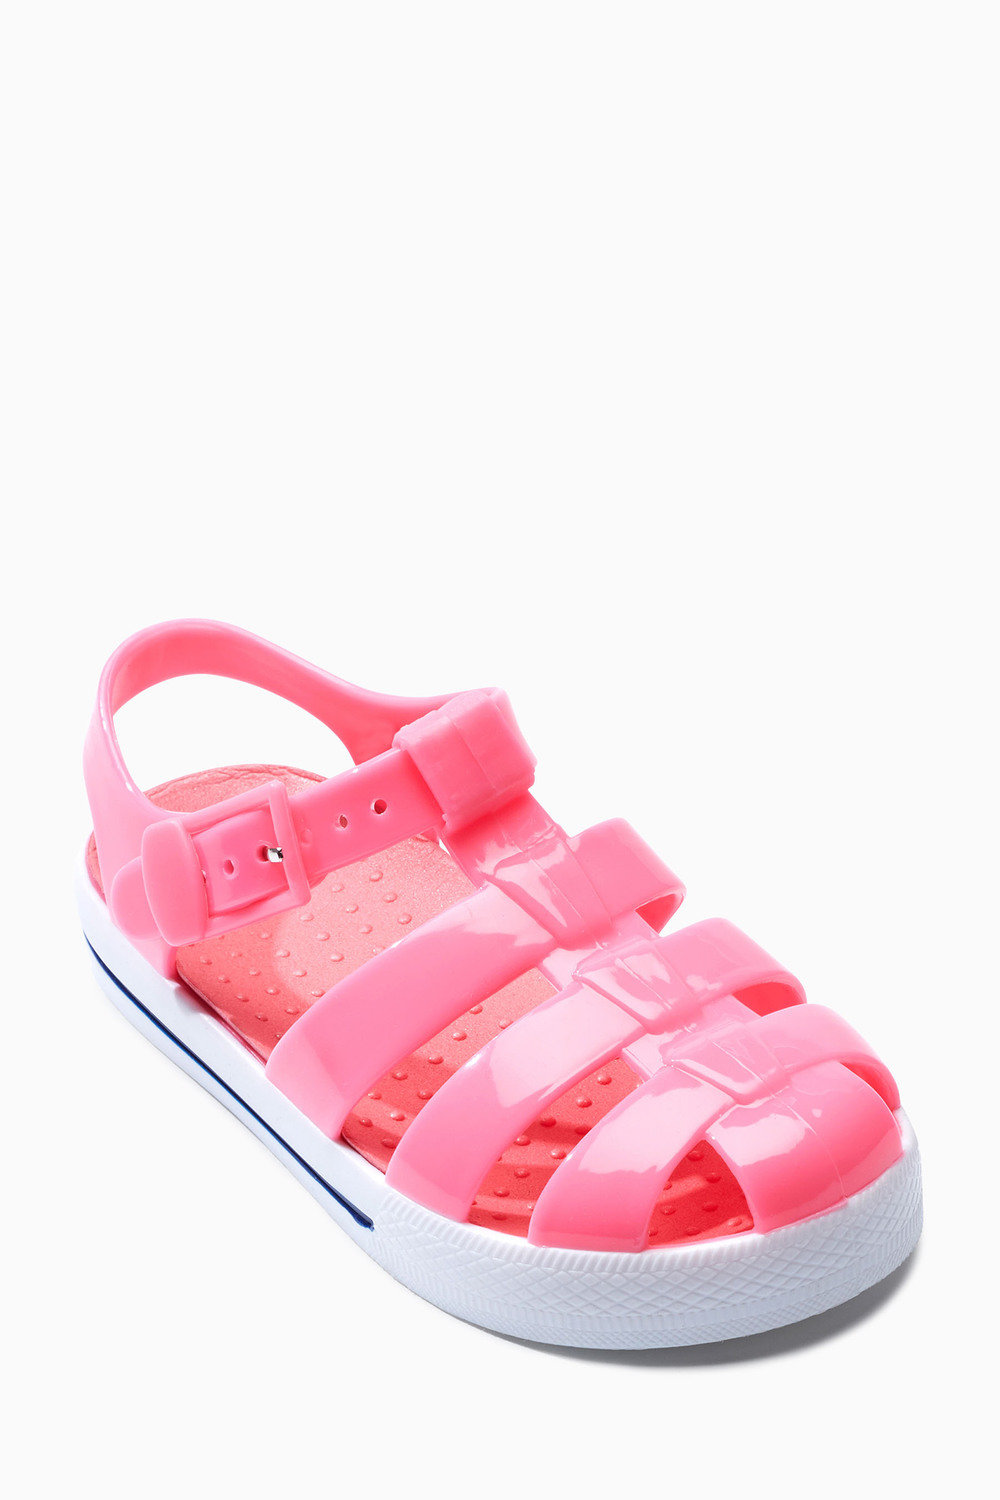 Next Jelly Sandals (Younger Girls) Online  887dc4842